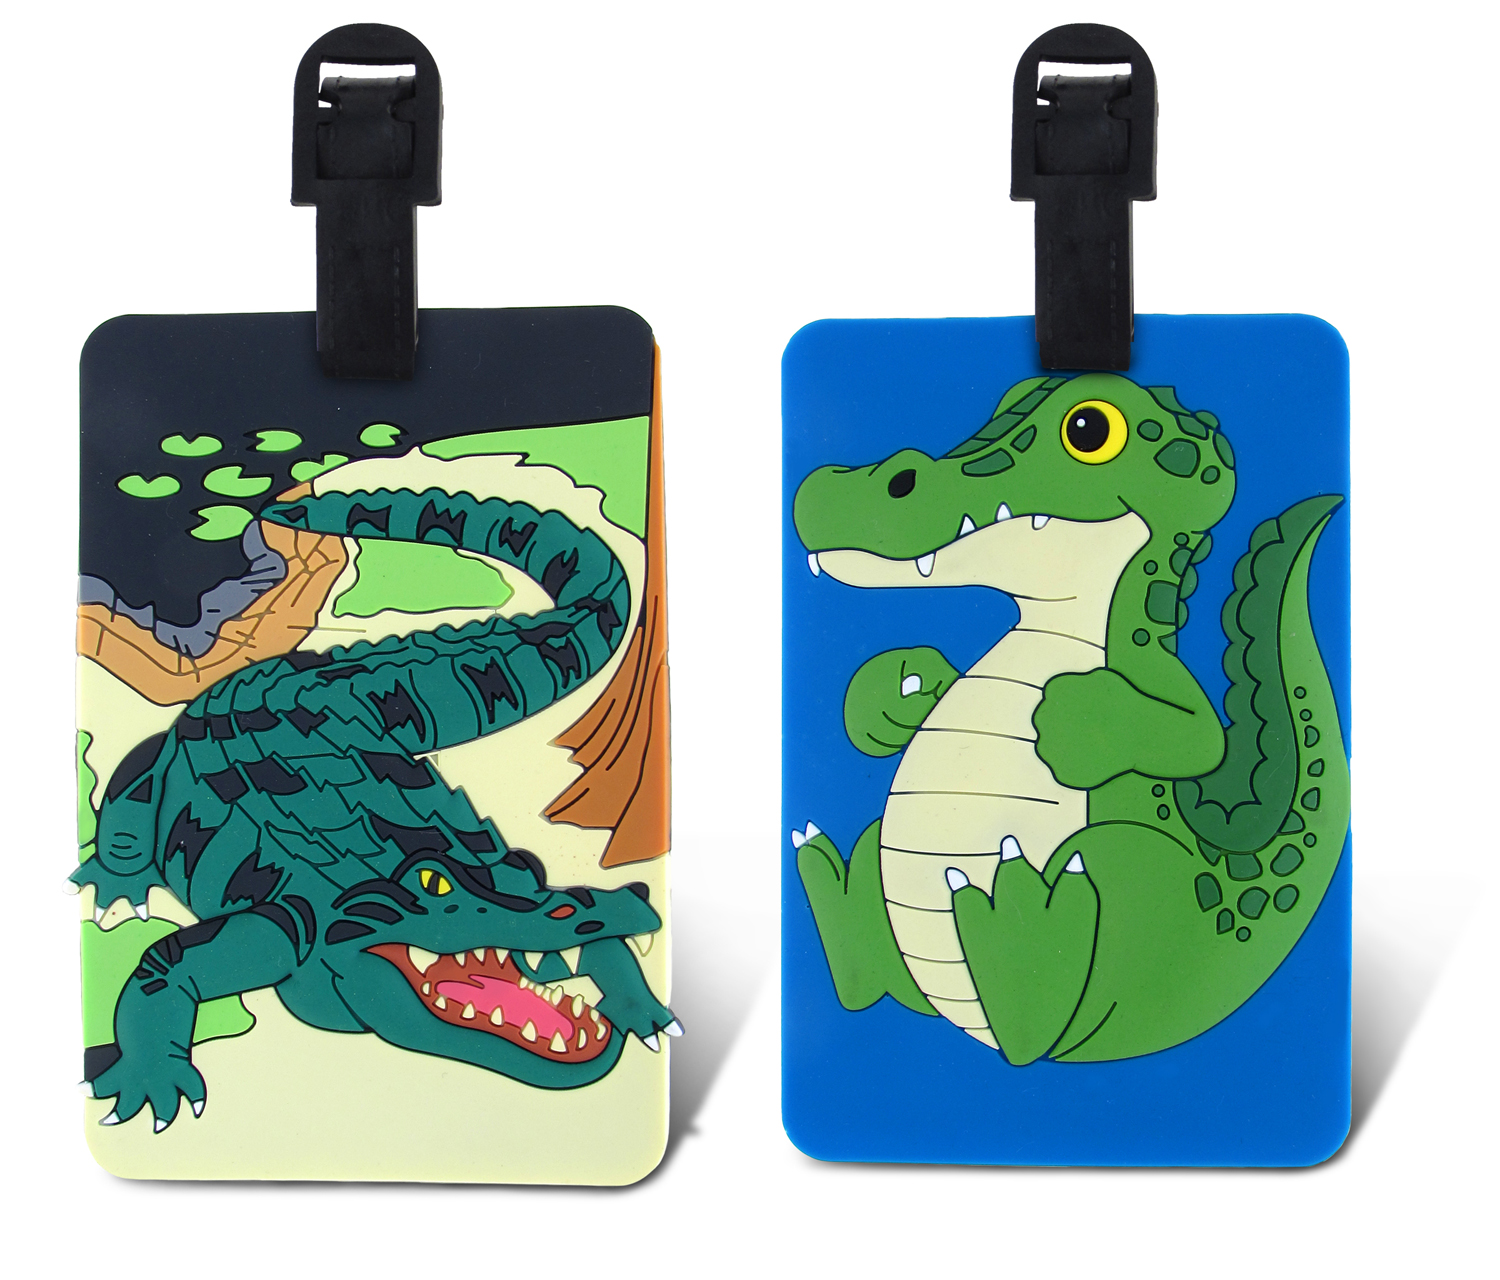 Puzzled Taggage Wild Gator And Cute Gator Luggage Tag 3.5...